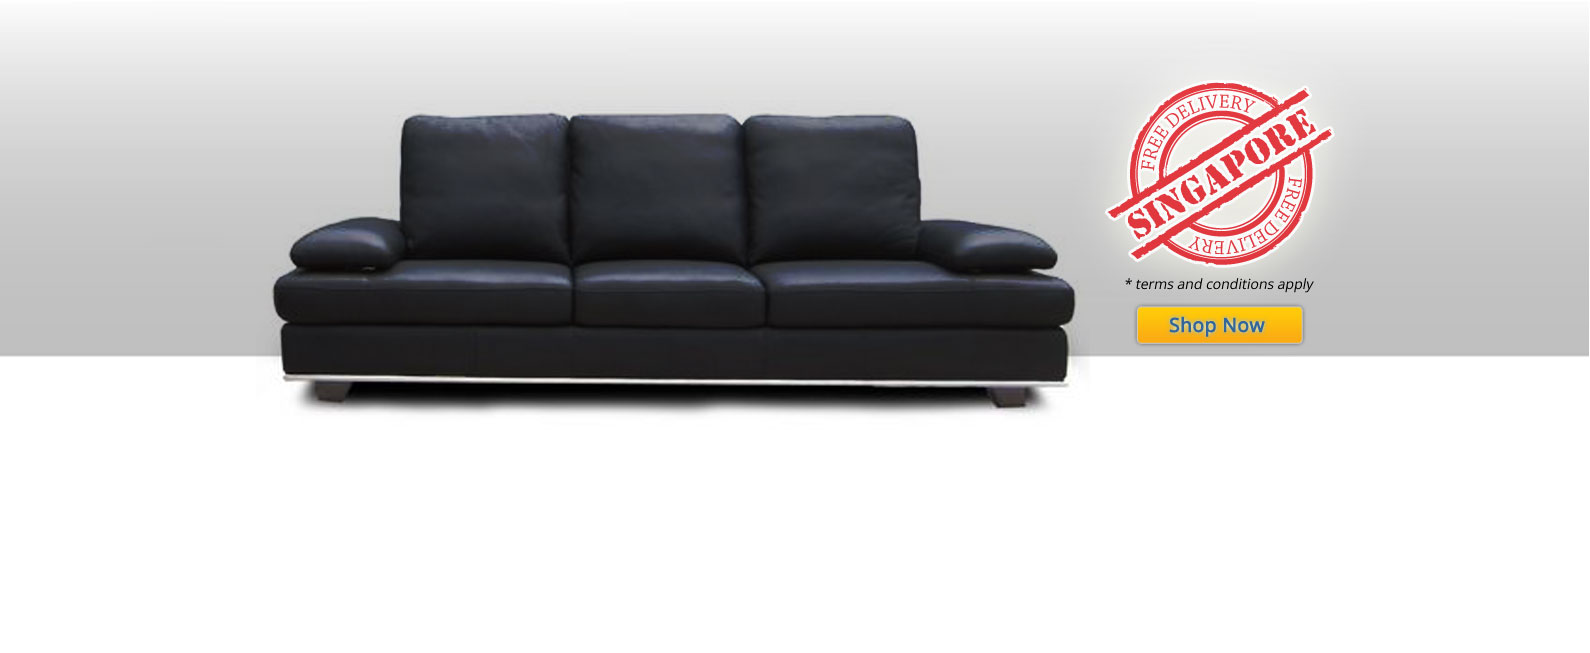 Home rossini furniture quality furniture company in for Sofa bed johor bahru